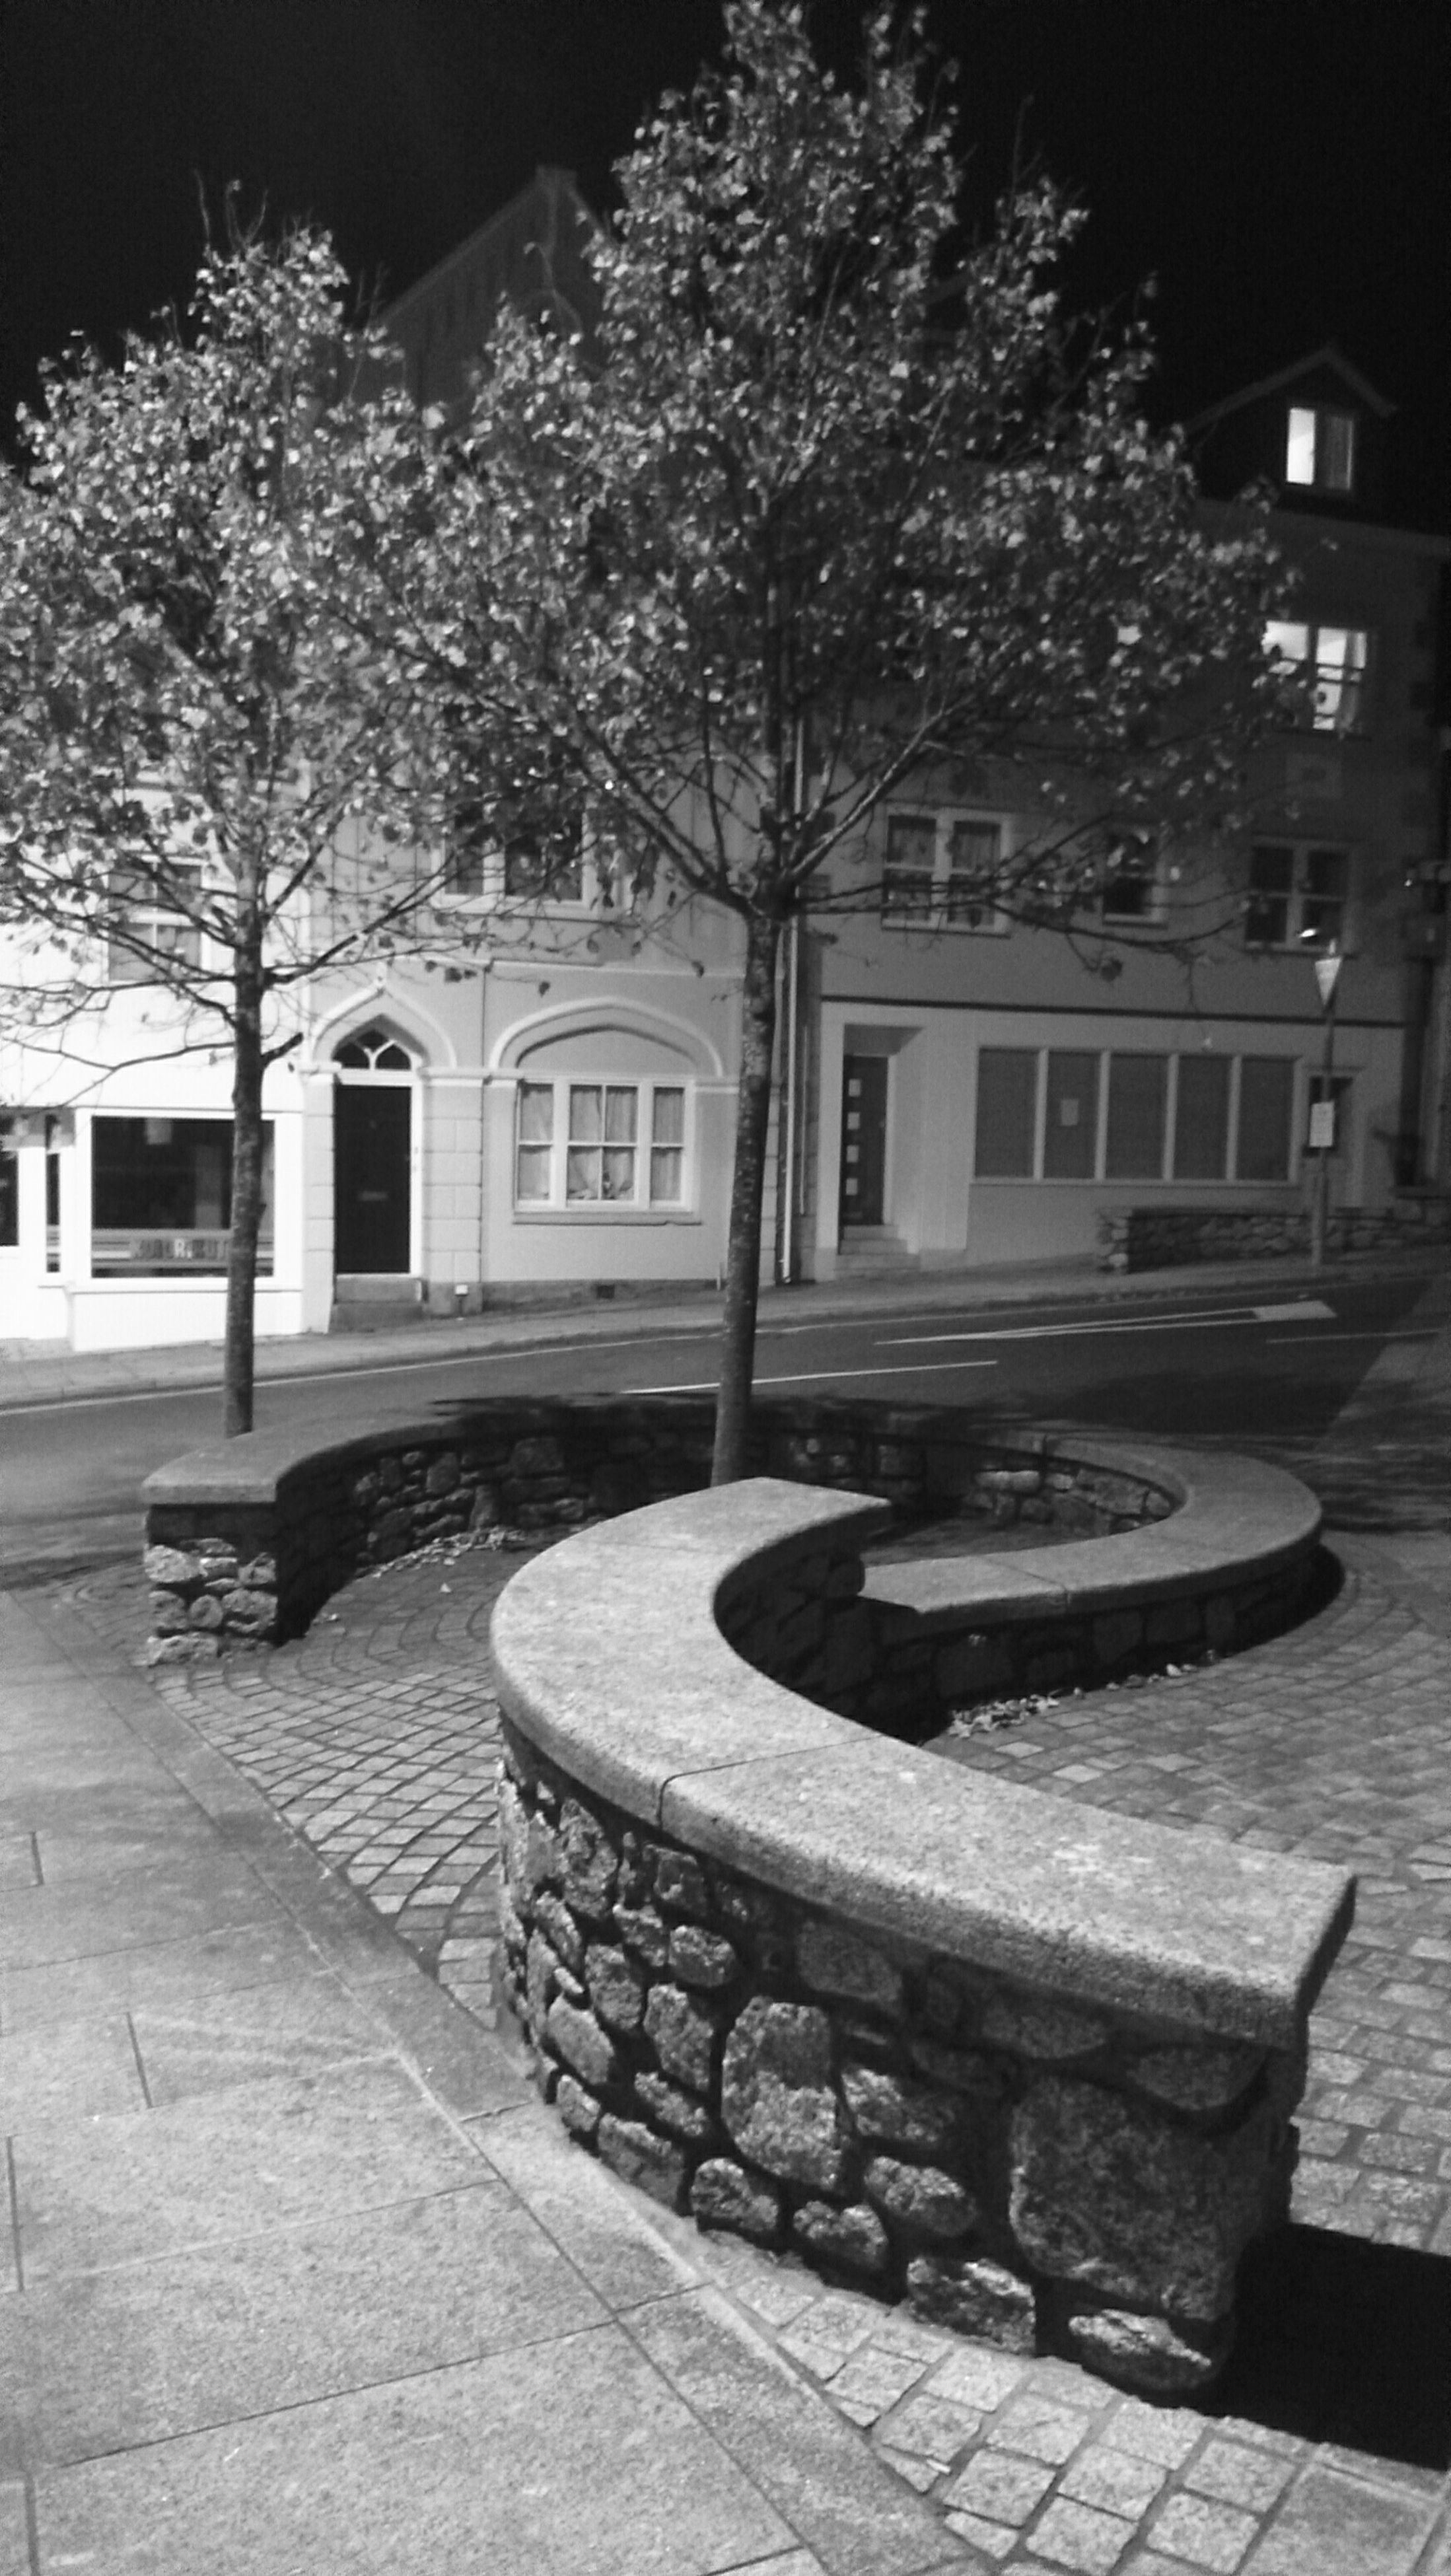 building exterior, built structure, tree, architecture, cobblestone, street, sidewalk, bench, paving stone, outdoors, bare tree, city, empty, absence, footpath, transportation, day, no people, house